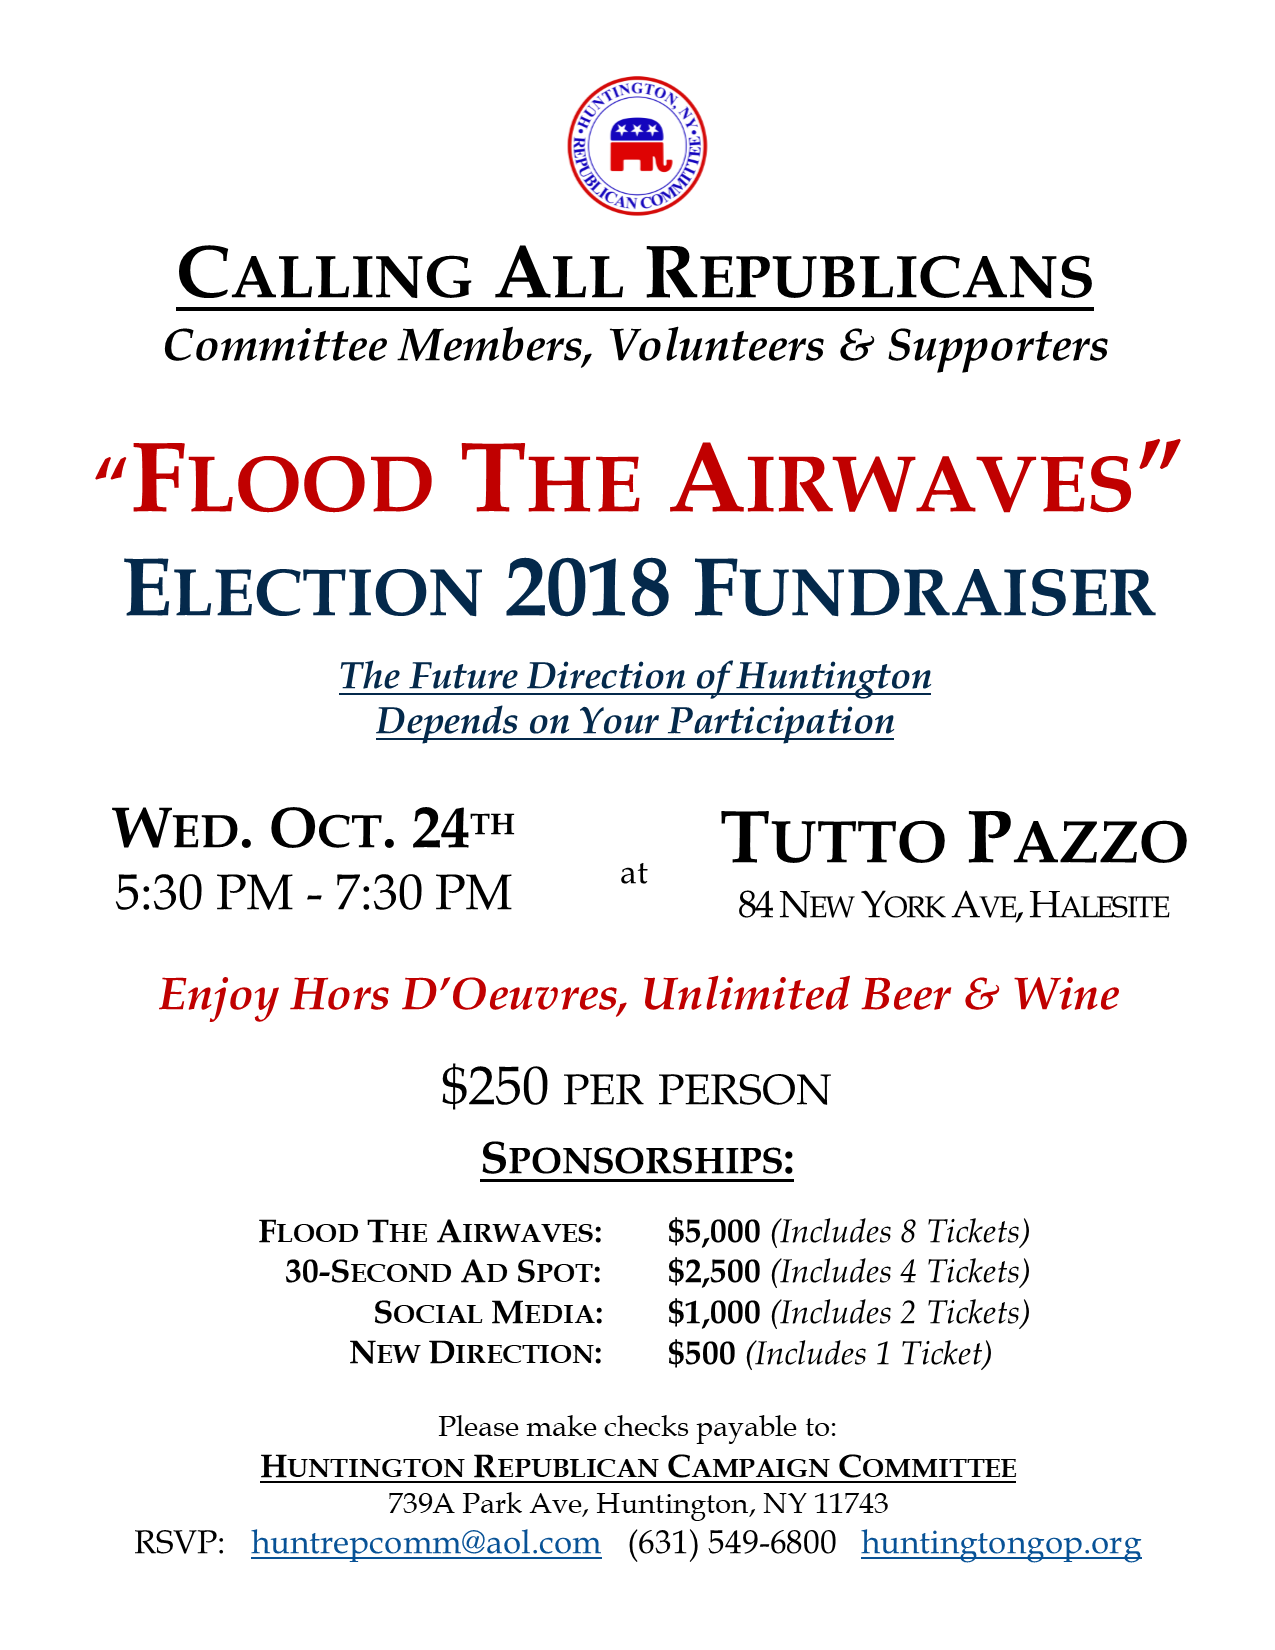 Flood_the_Airwaves_Election_2018_Fundraiser_FINAL.png